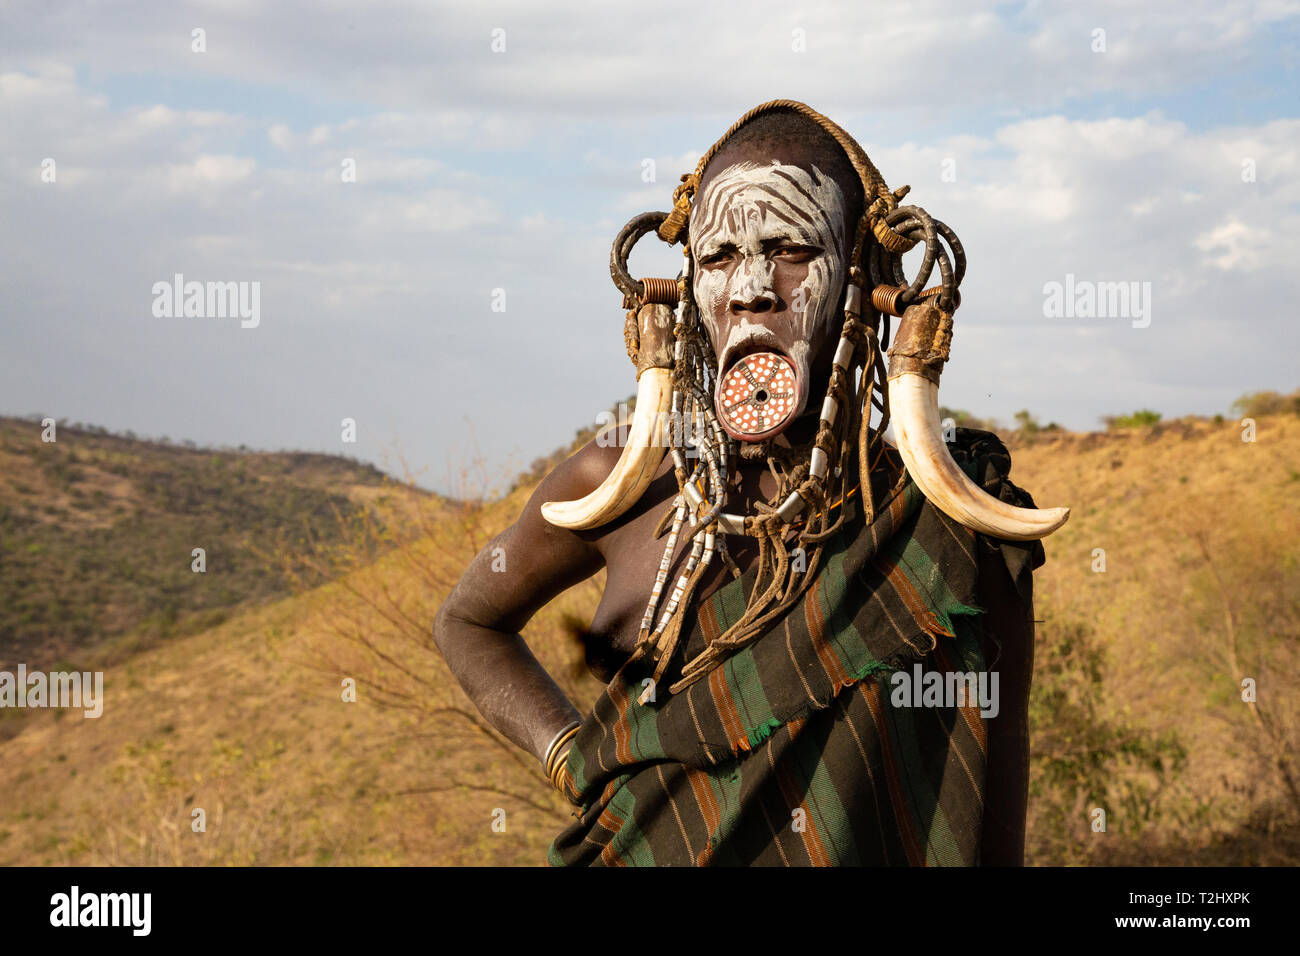 A decorated Mursi woman in Mago National Park, southern Ethiopia - Stock Image